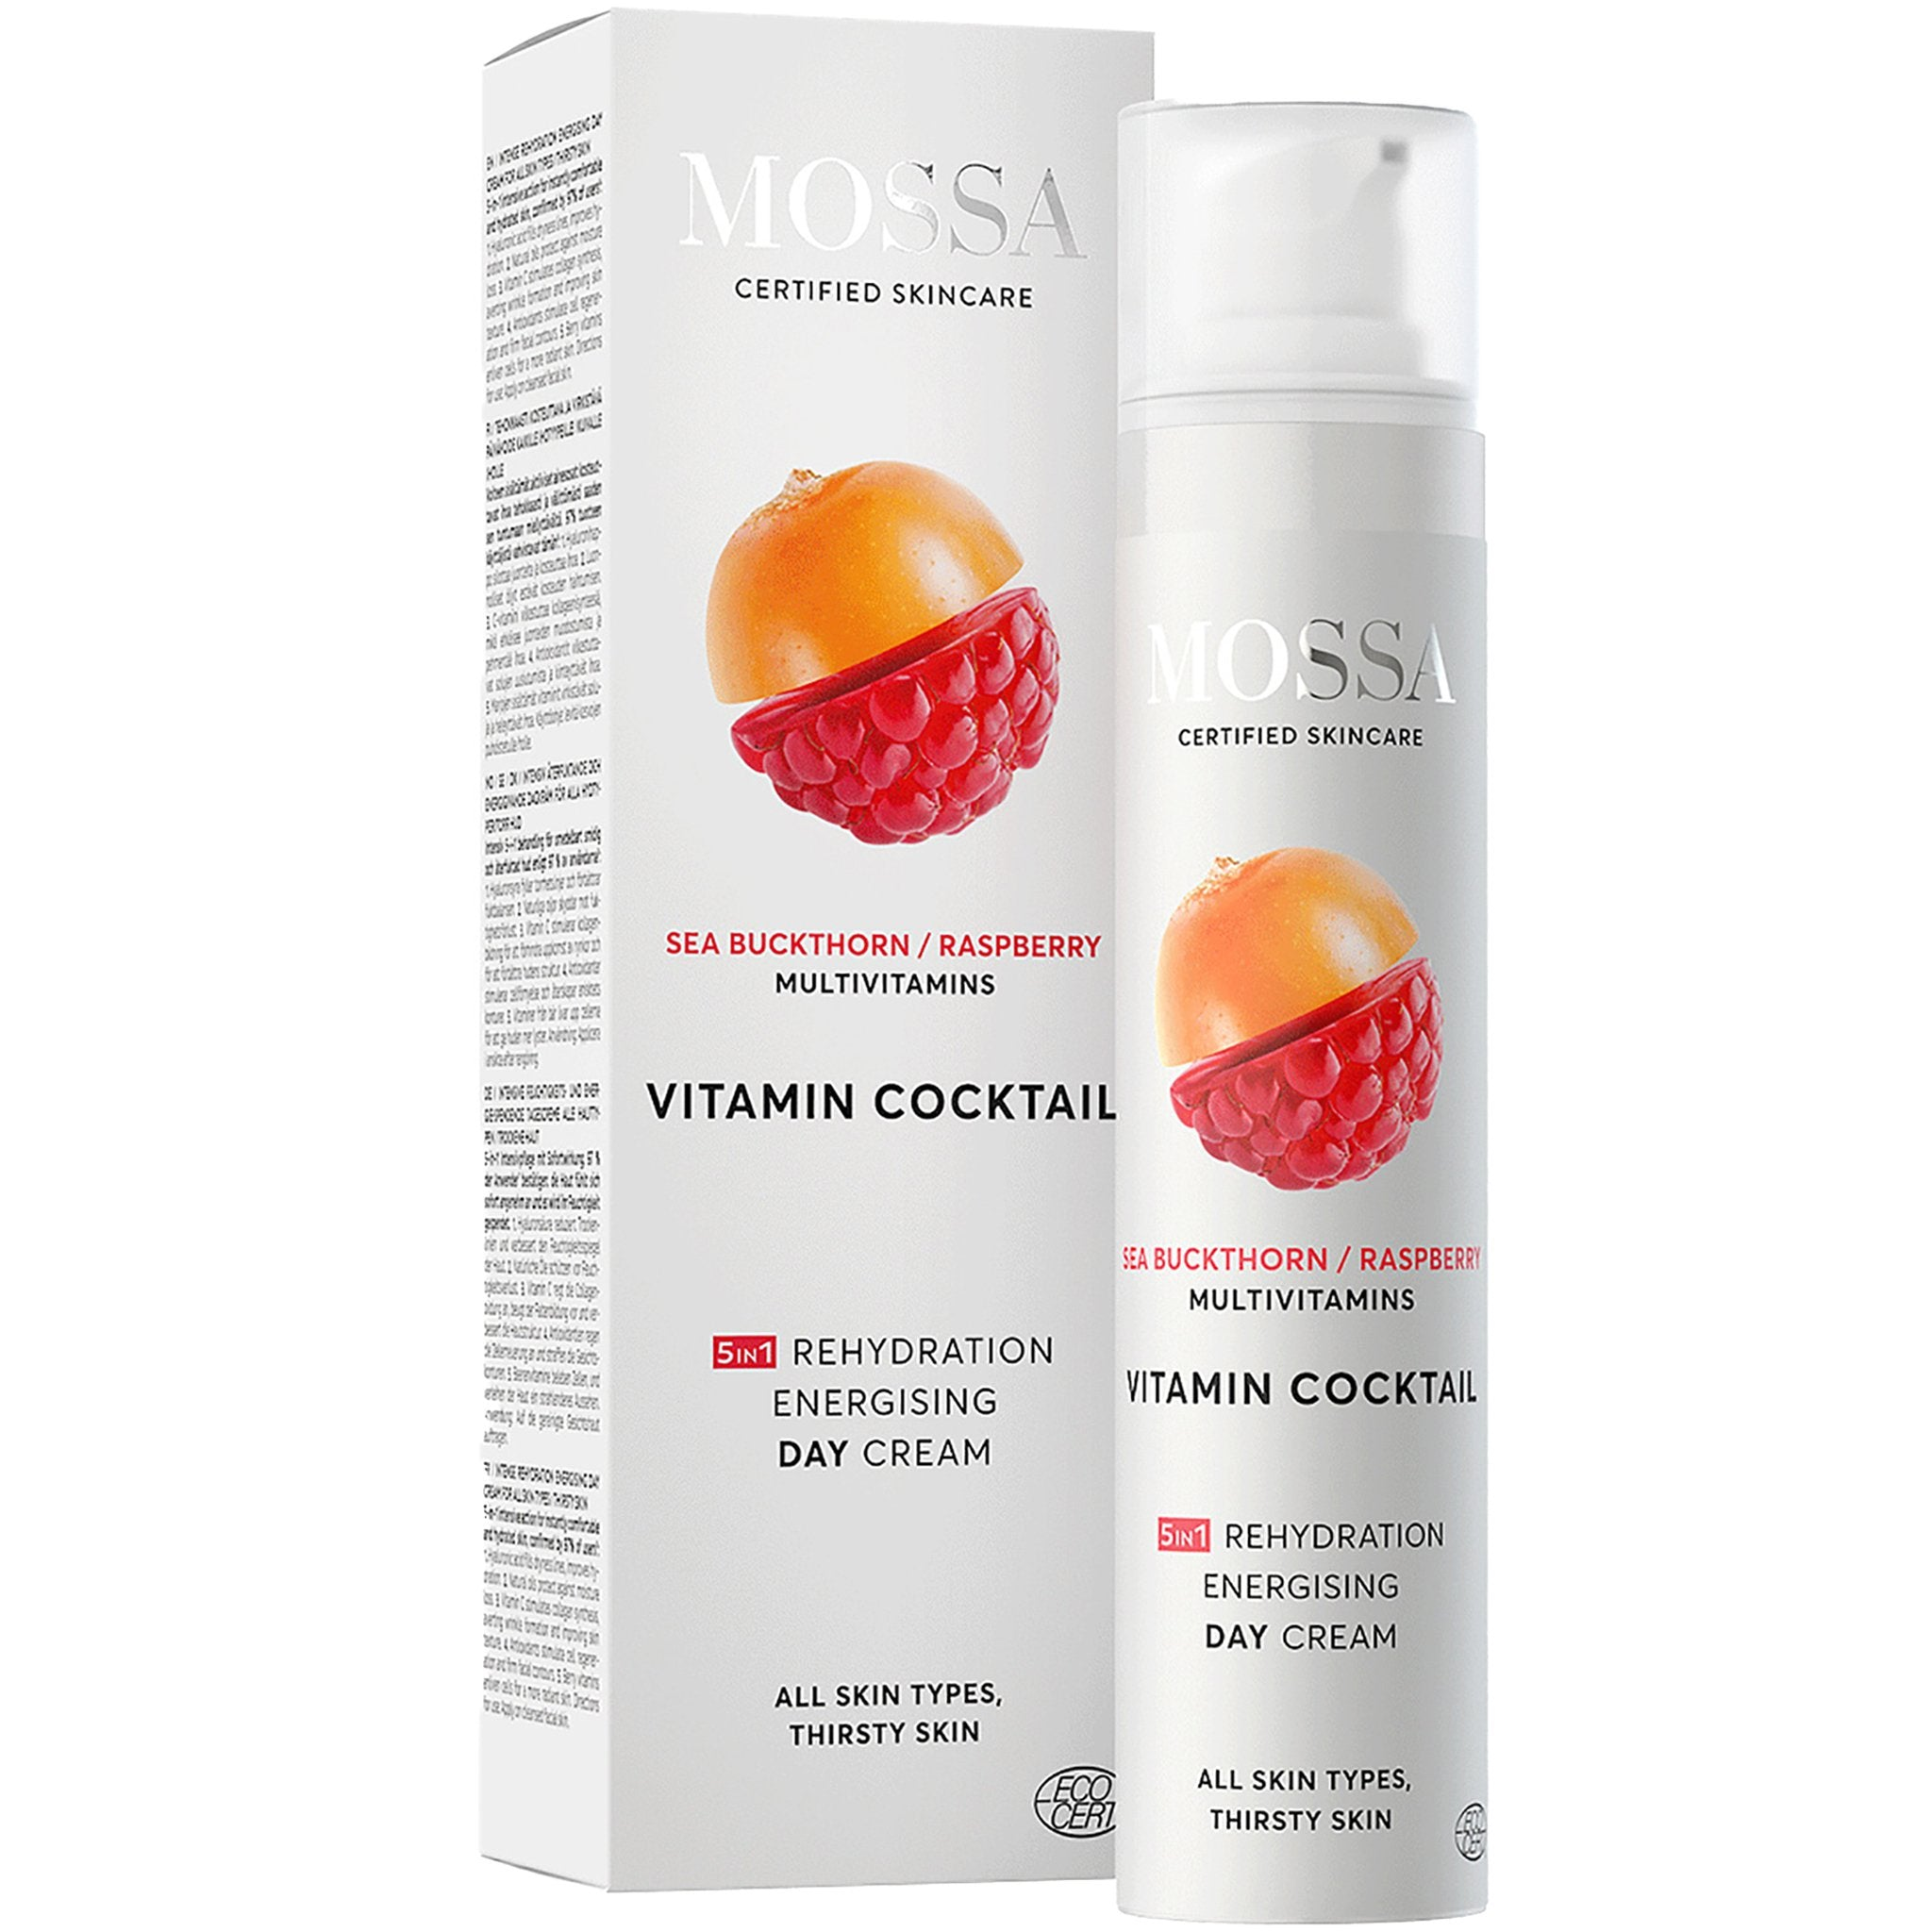 Vitamin Cocktail Intense Rehydration Energising Day Cream